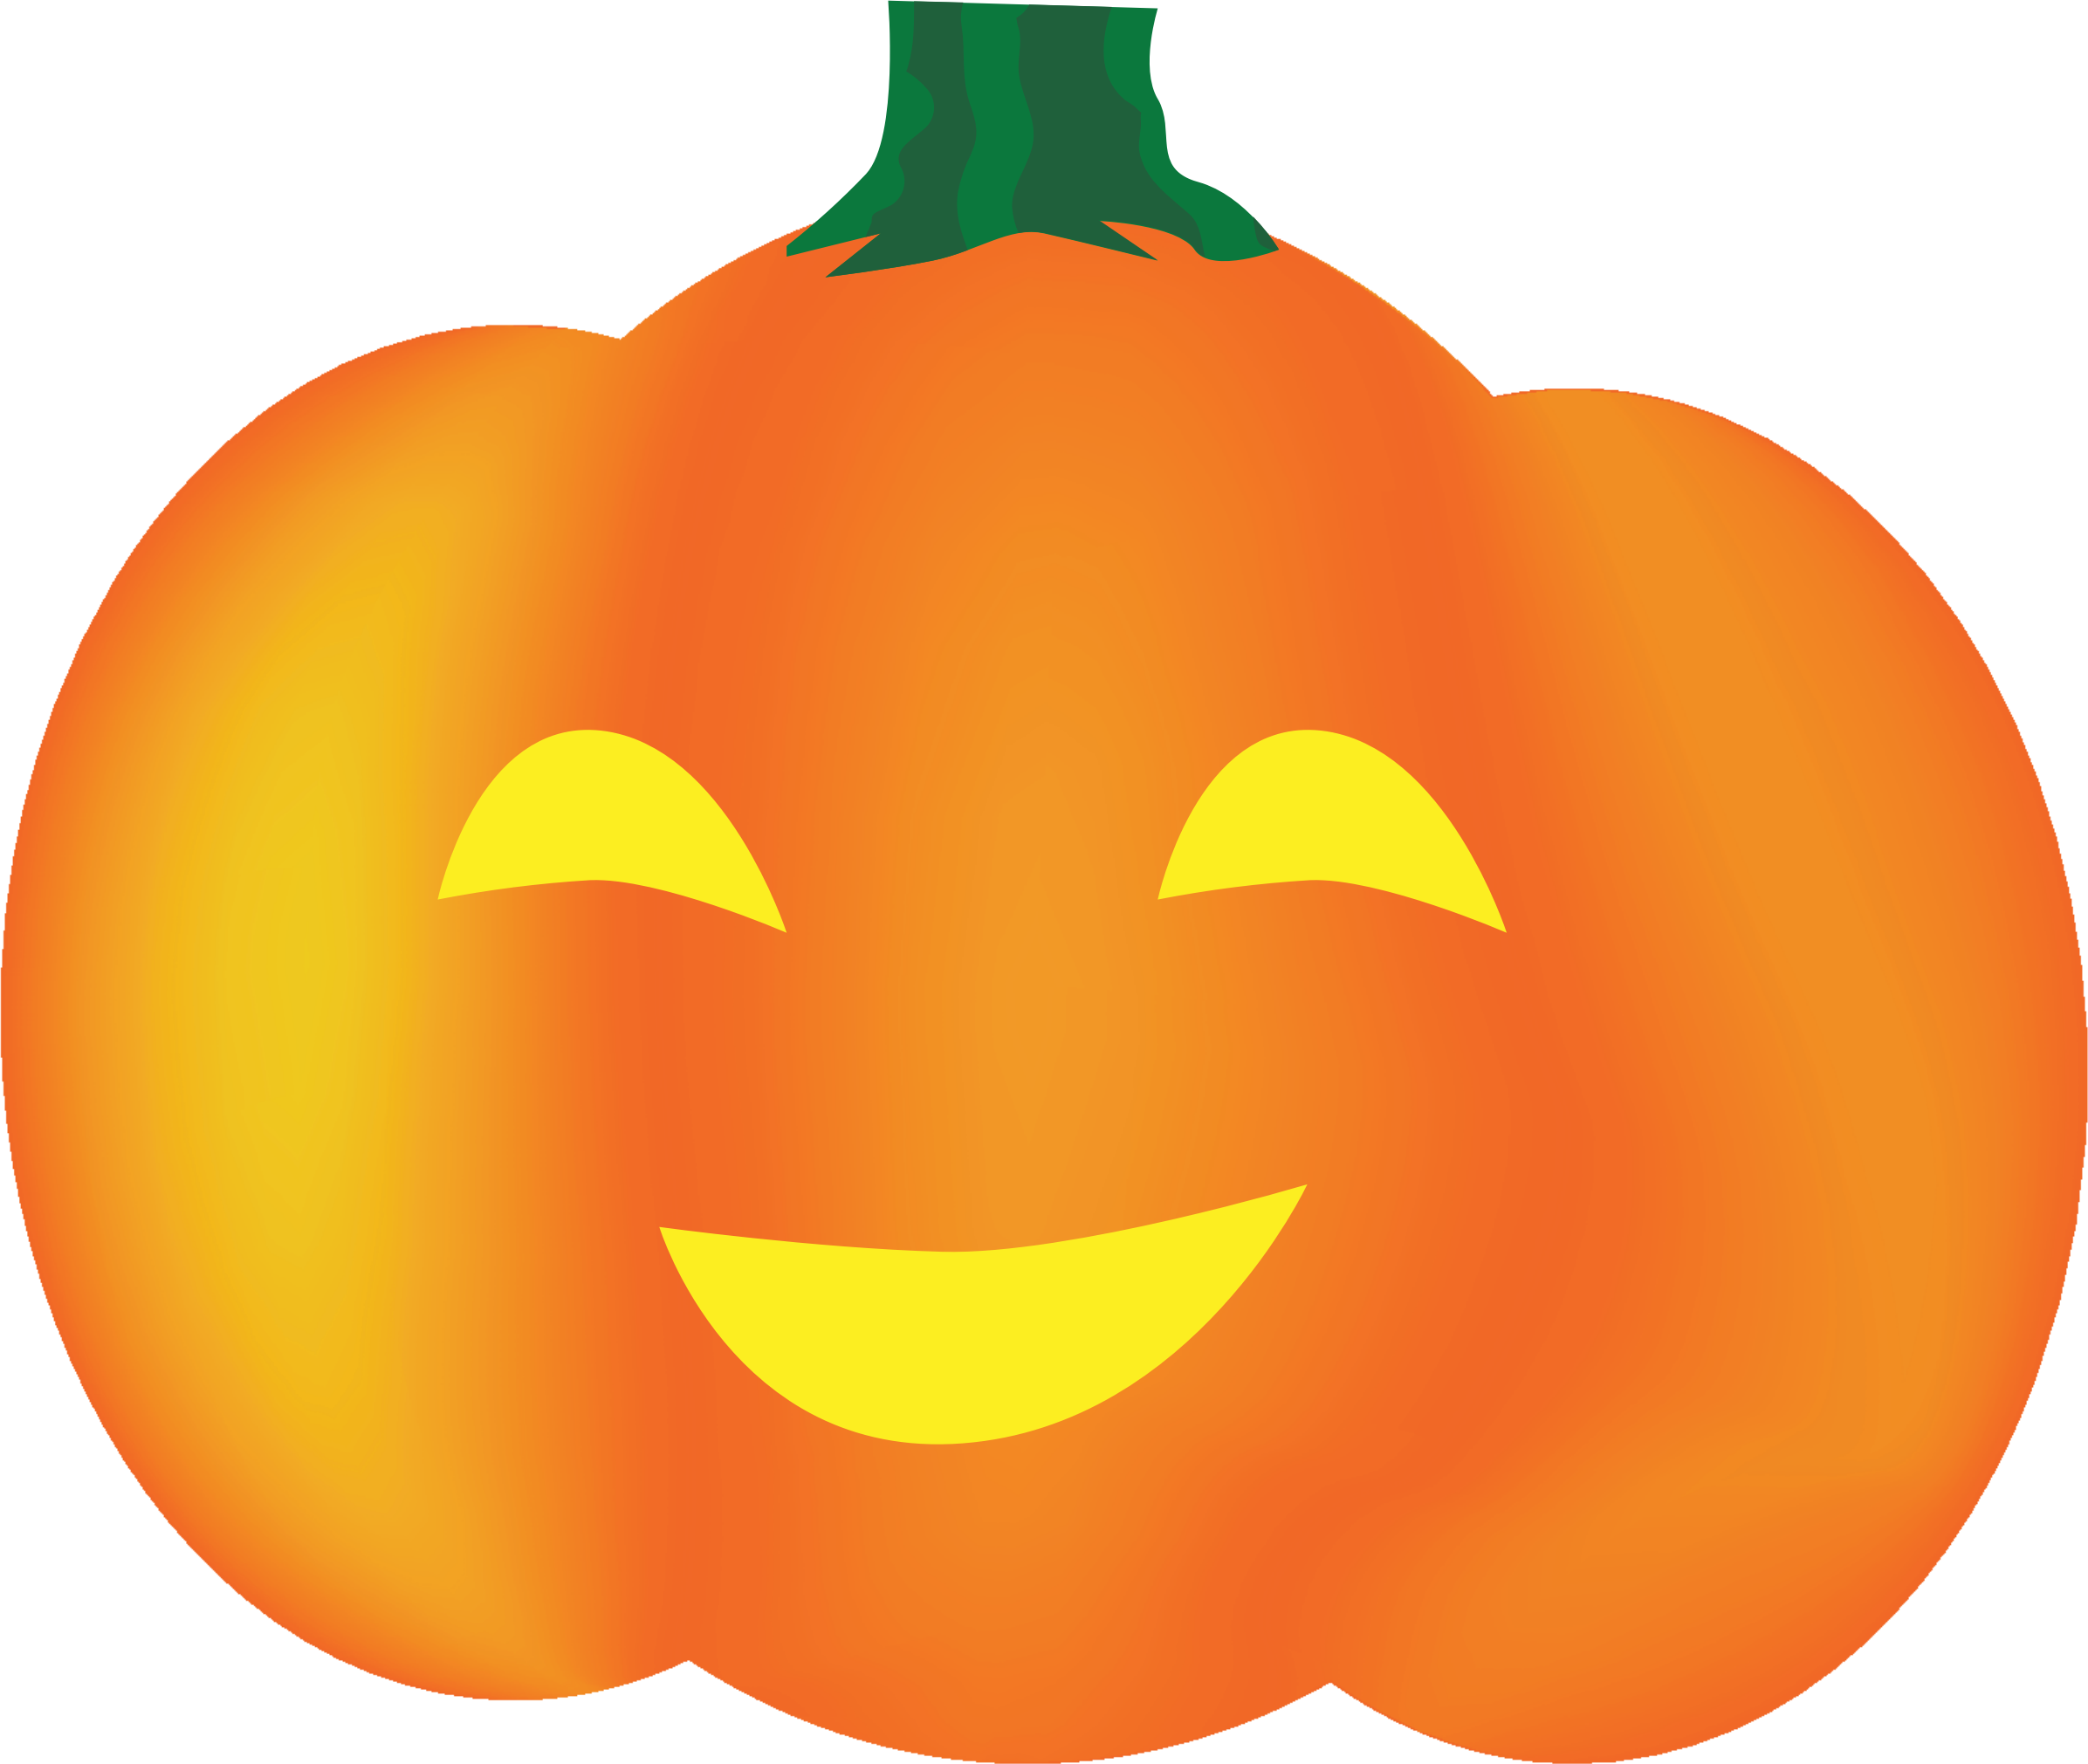 Smiley Pumpkin by snoopingasusual